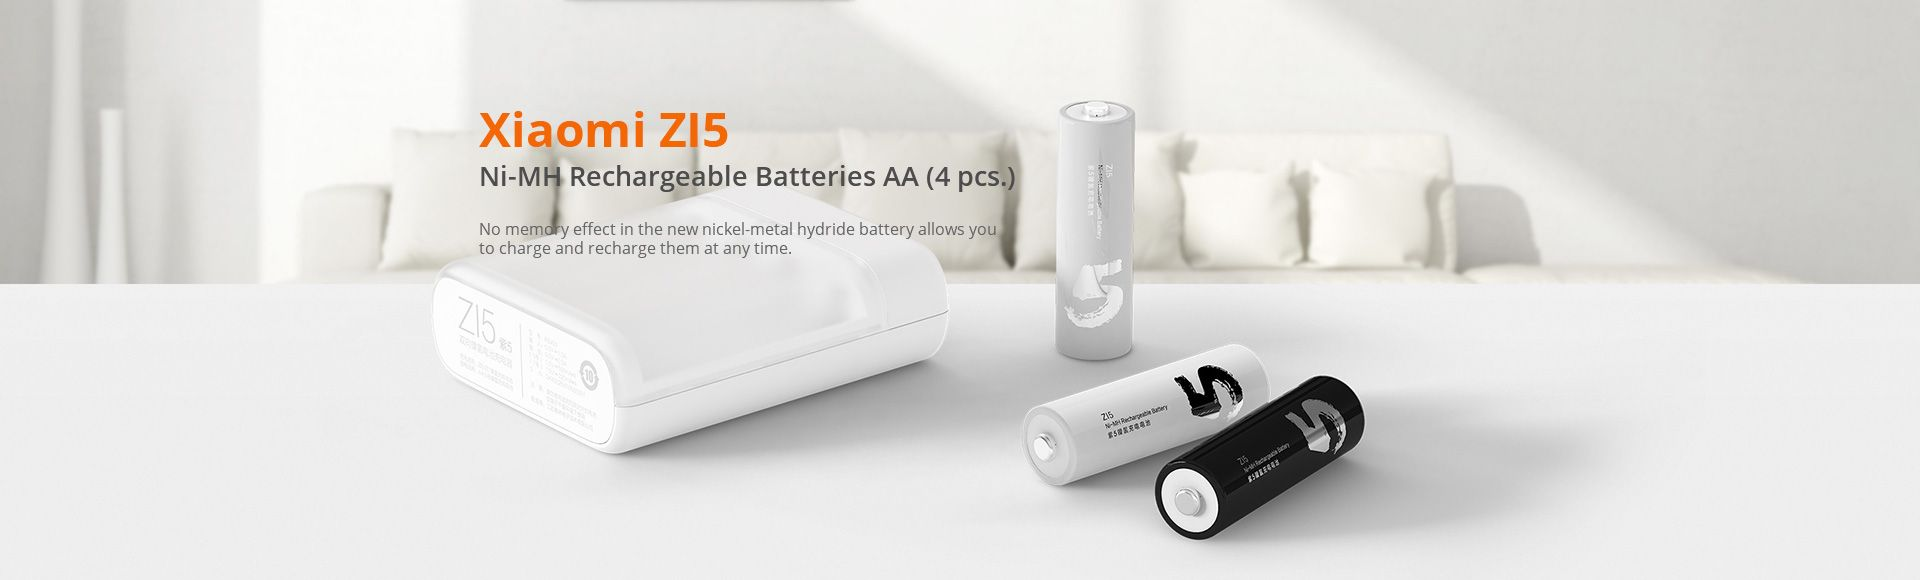 Xiaomi ZI5 NiMH Rechargeable Battery Charger - 1800mAh min. / 1900mAh typ. Fast Portable Bidirectional Rechargeable AA AAA Battery Charger with USB Port Environmentally For Camera Toys Outdoor EPS